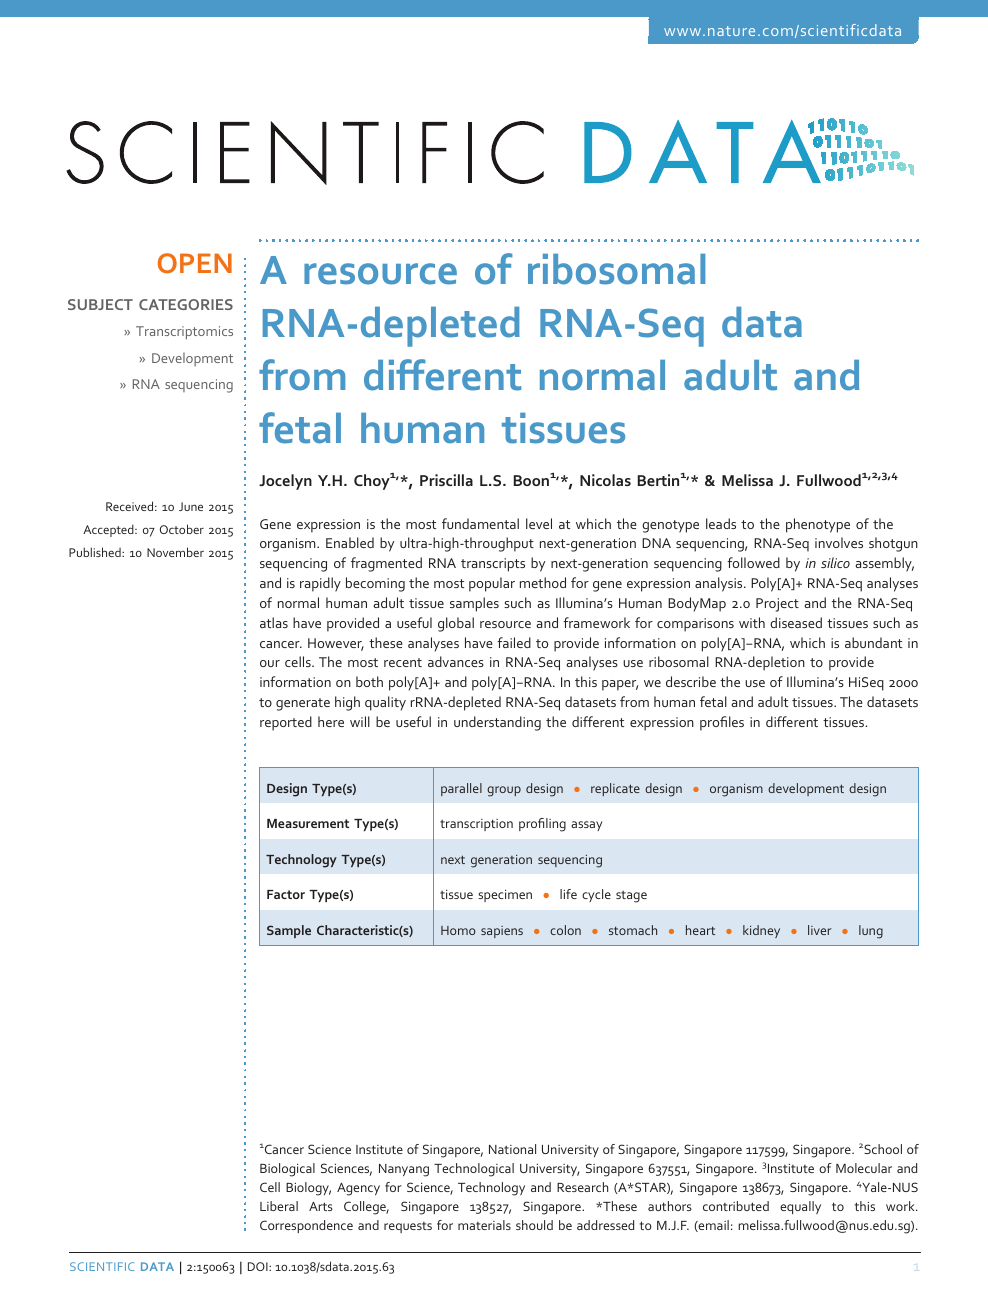 A resource of ribosomal RNA-depleted RNA-Seq data from different